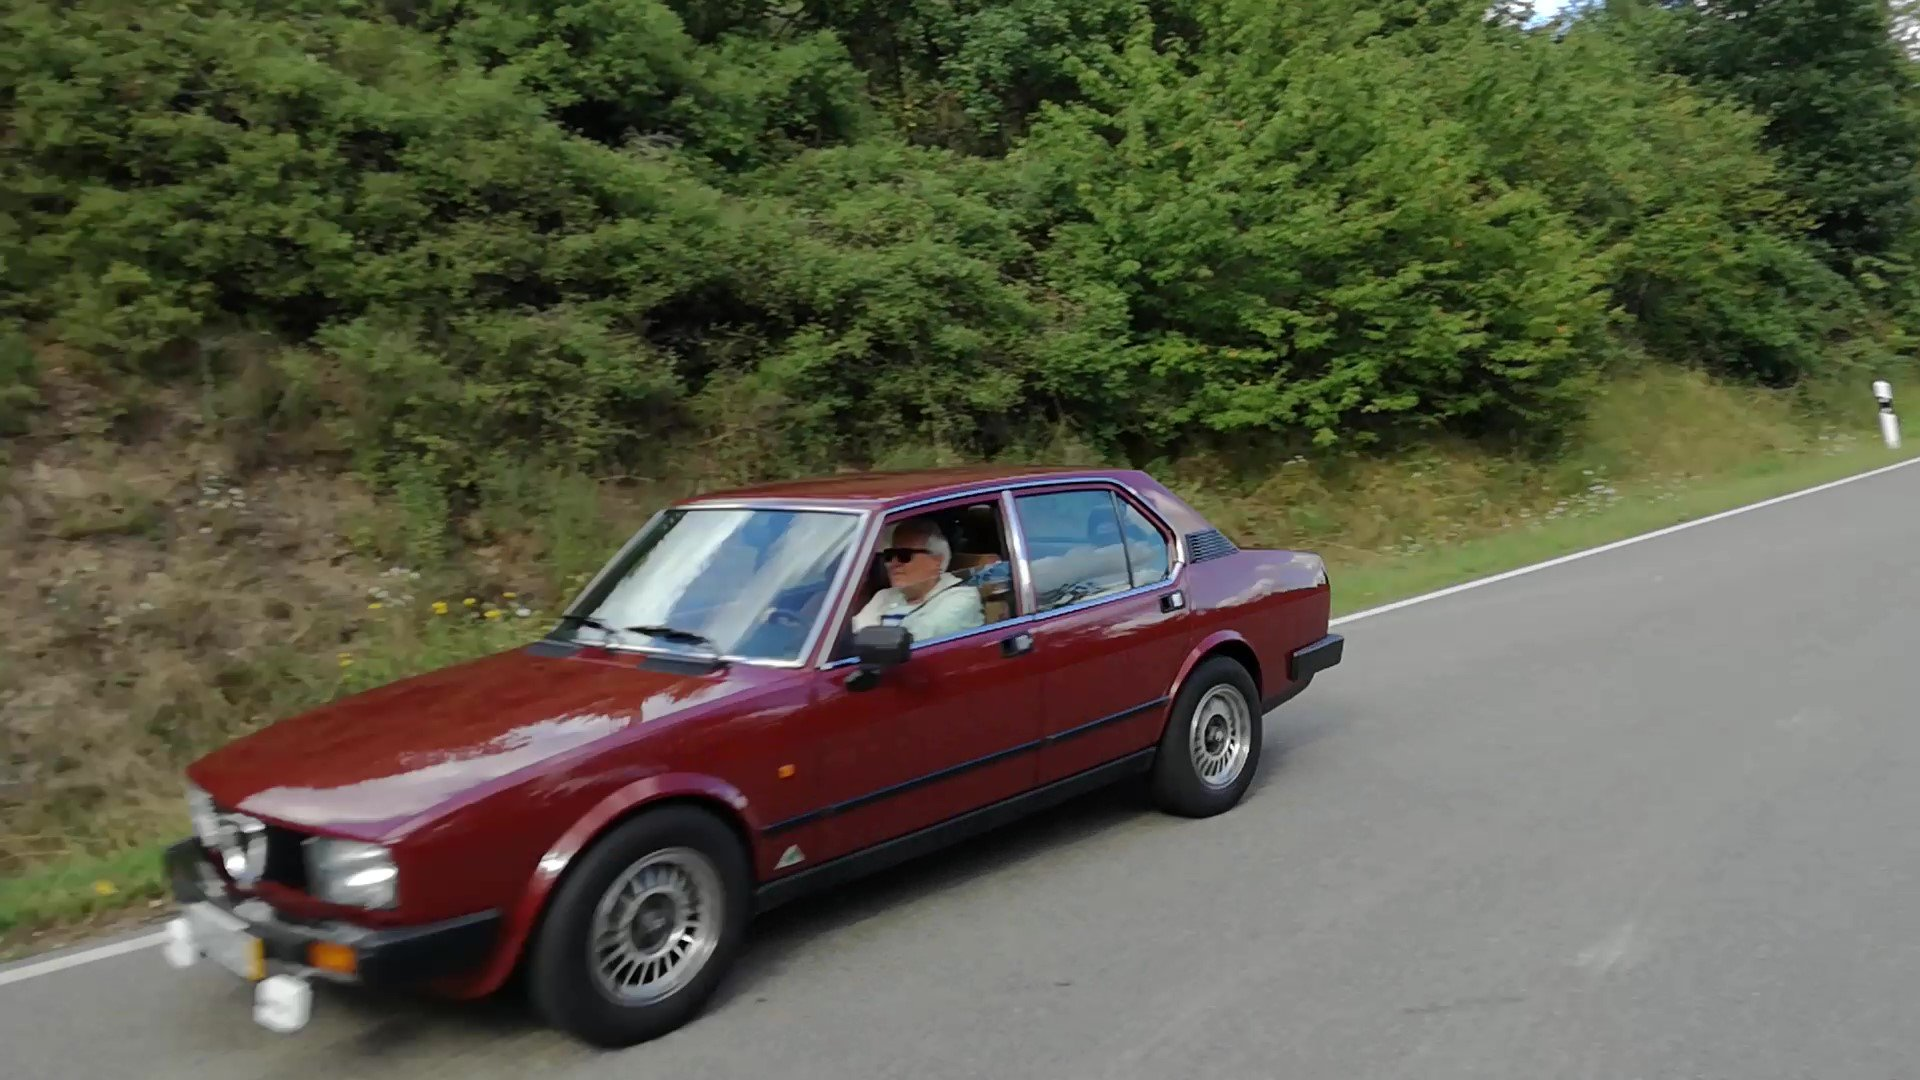 1982 Alfa Romeo Alfetta 2.0 taped to the asphalt.transaxle system For Sale (picture 3 of 3)